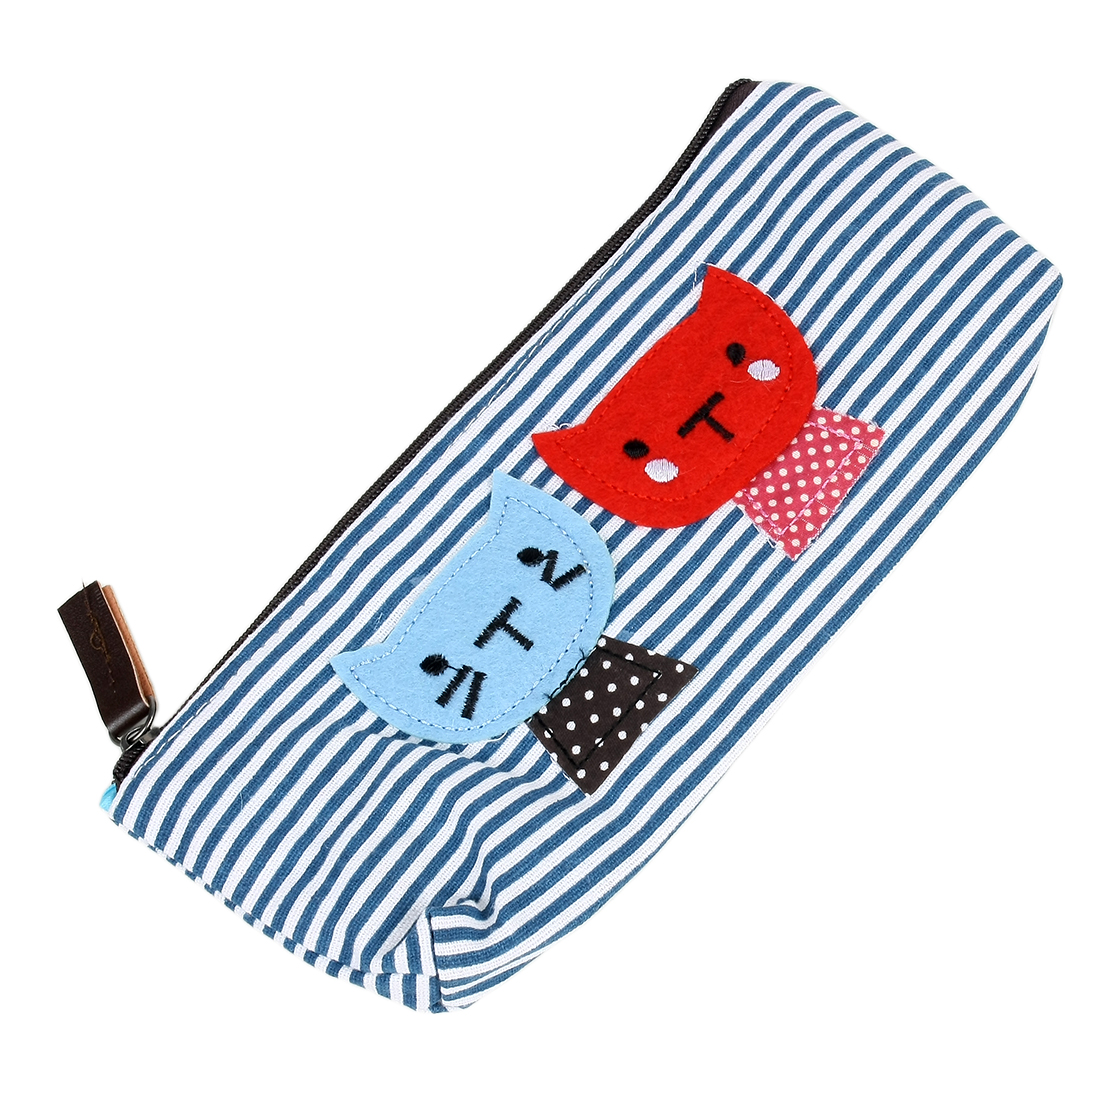 Lovely Dual Cat Decor Stripes Pattern Zippered Stationery Pencil Rulers Pen Case Holder Canvas Bag Pouch Navy Blue